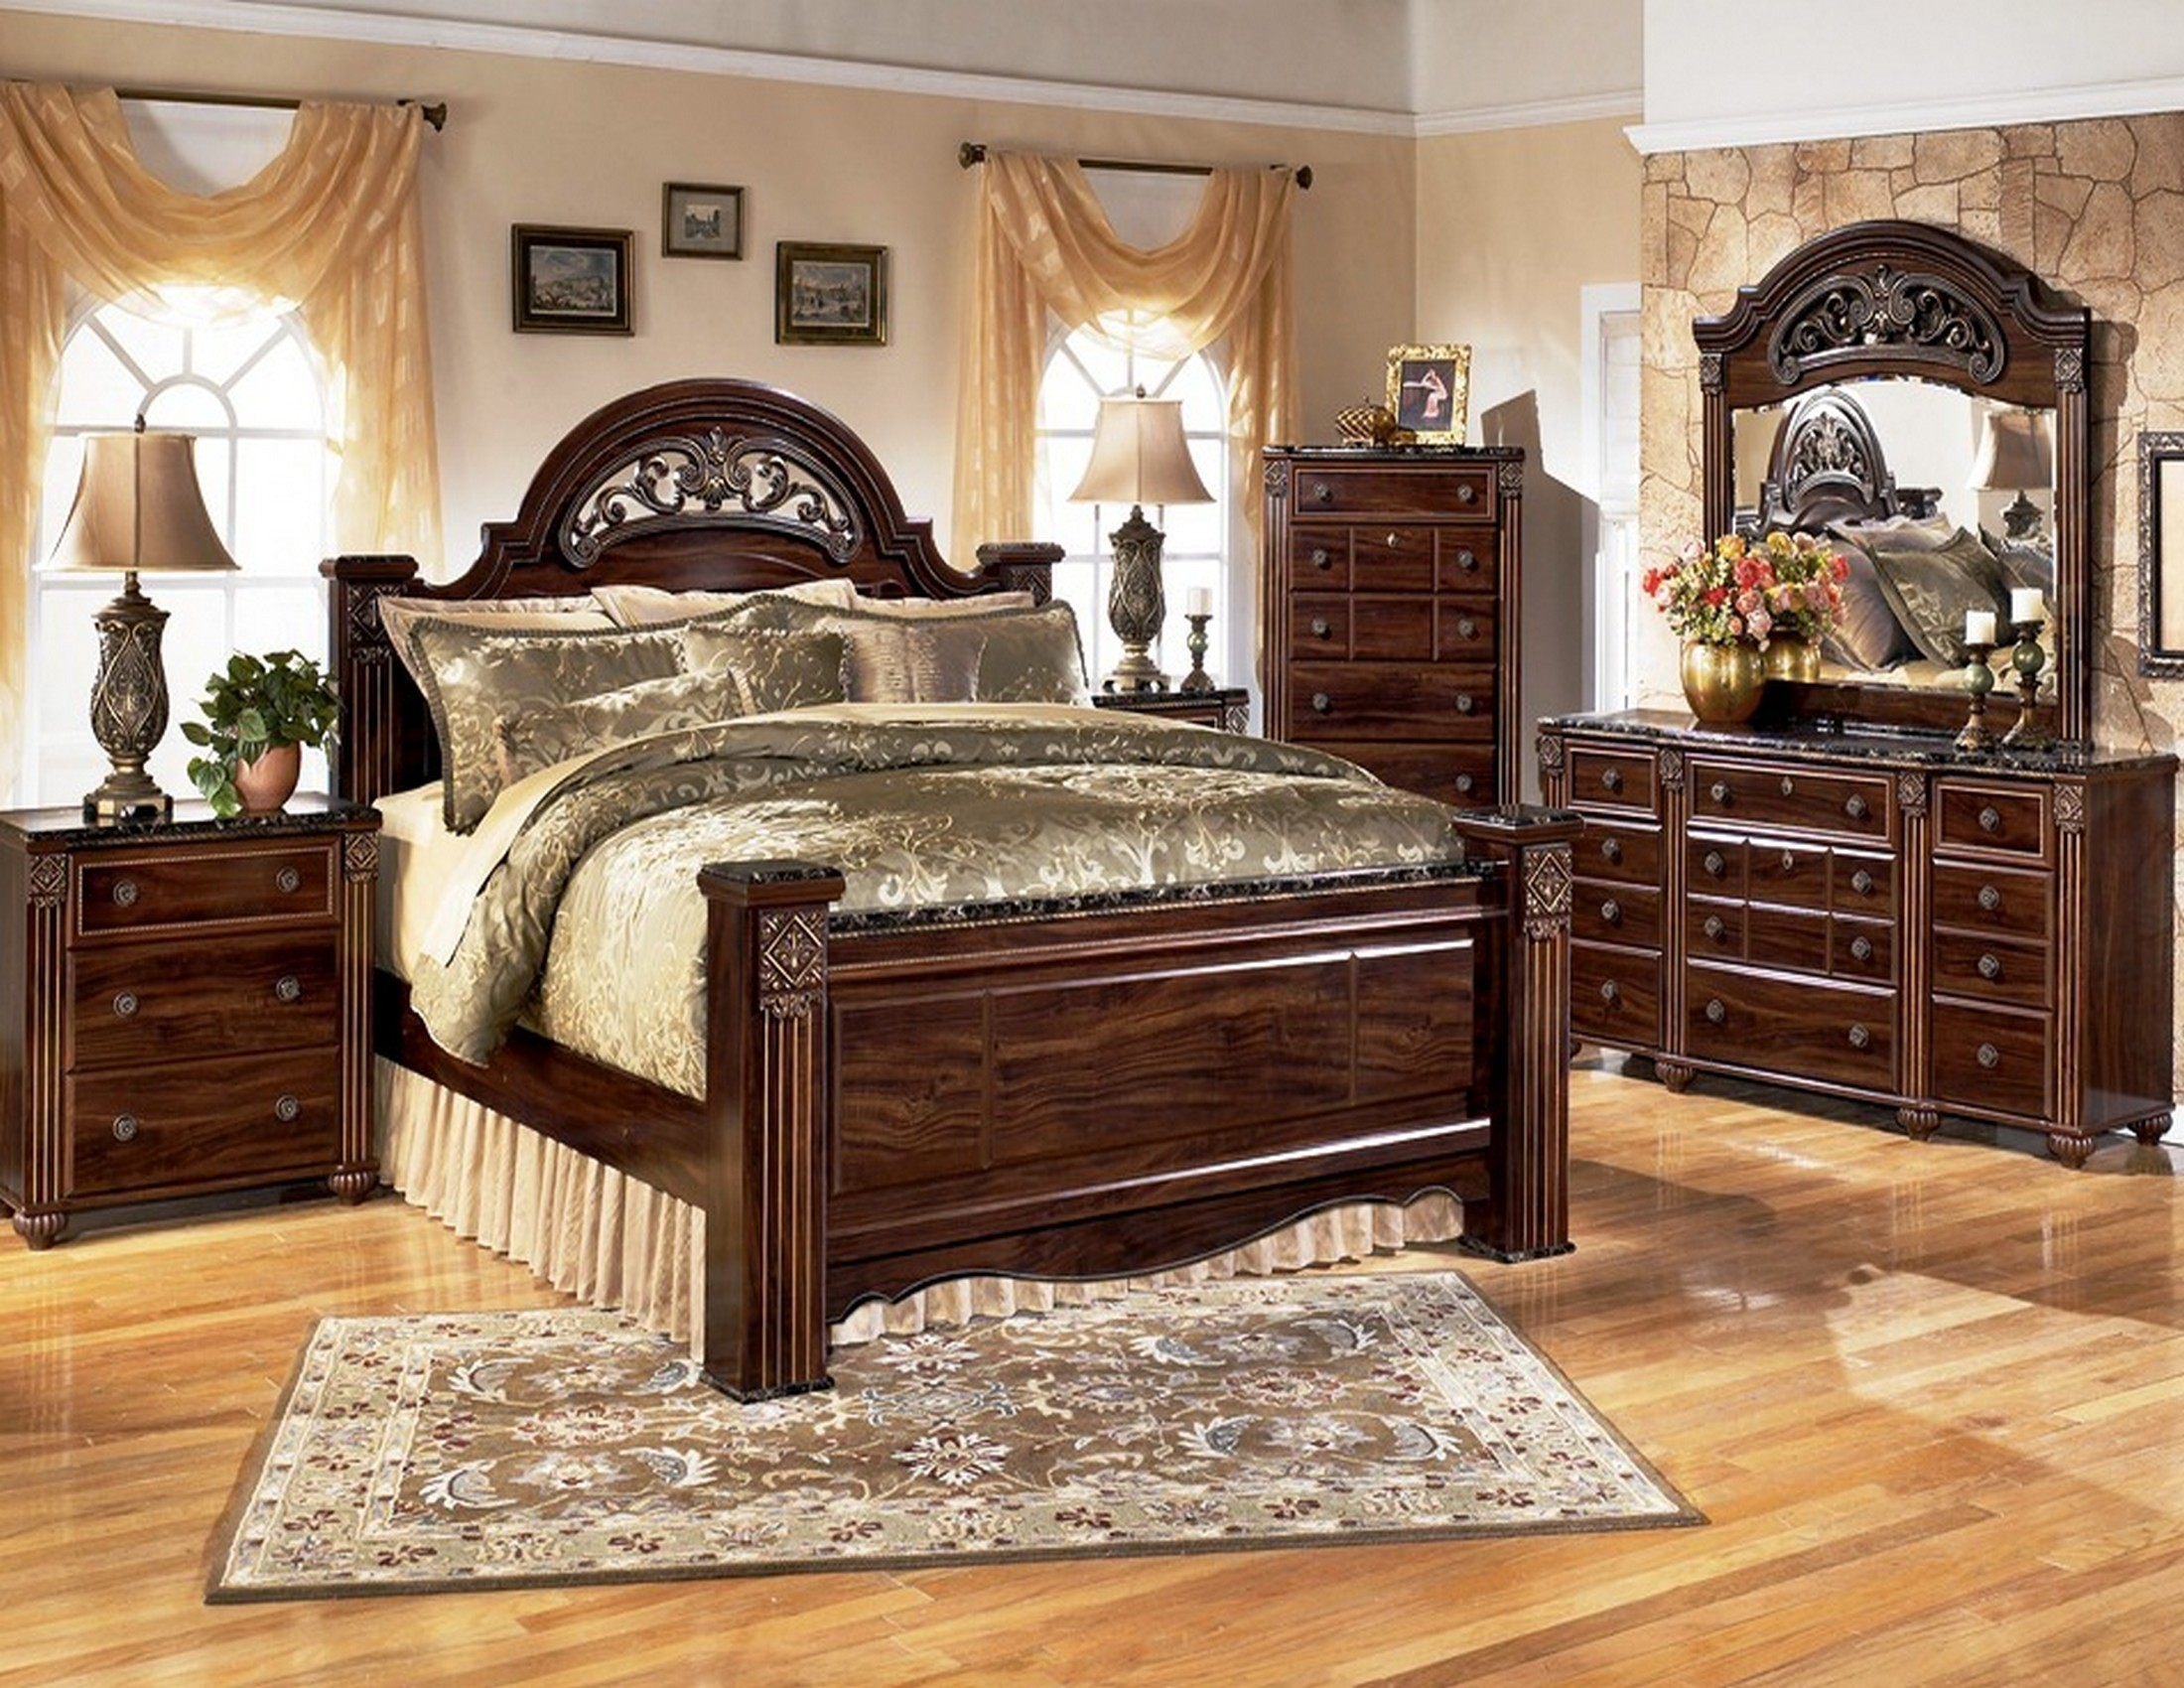 Best Bedroom Sets With Drawers Under Bed Minimalist